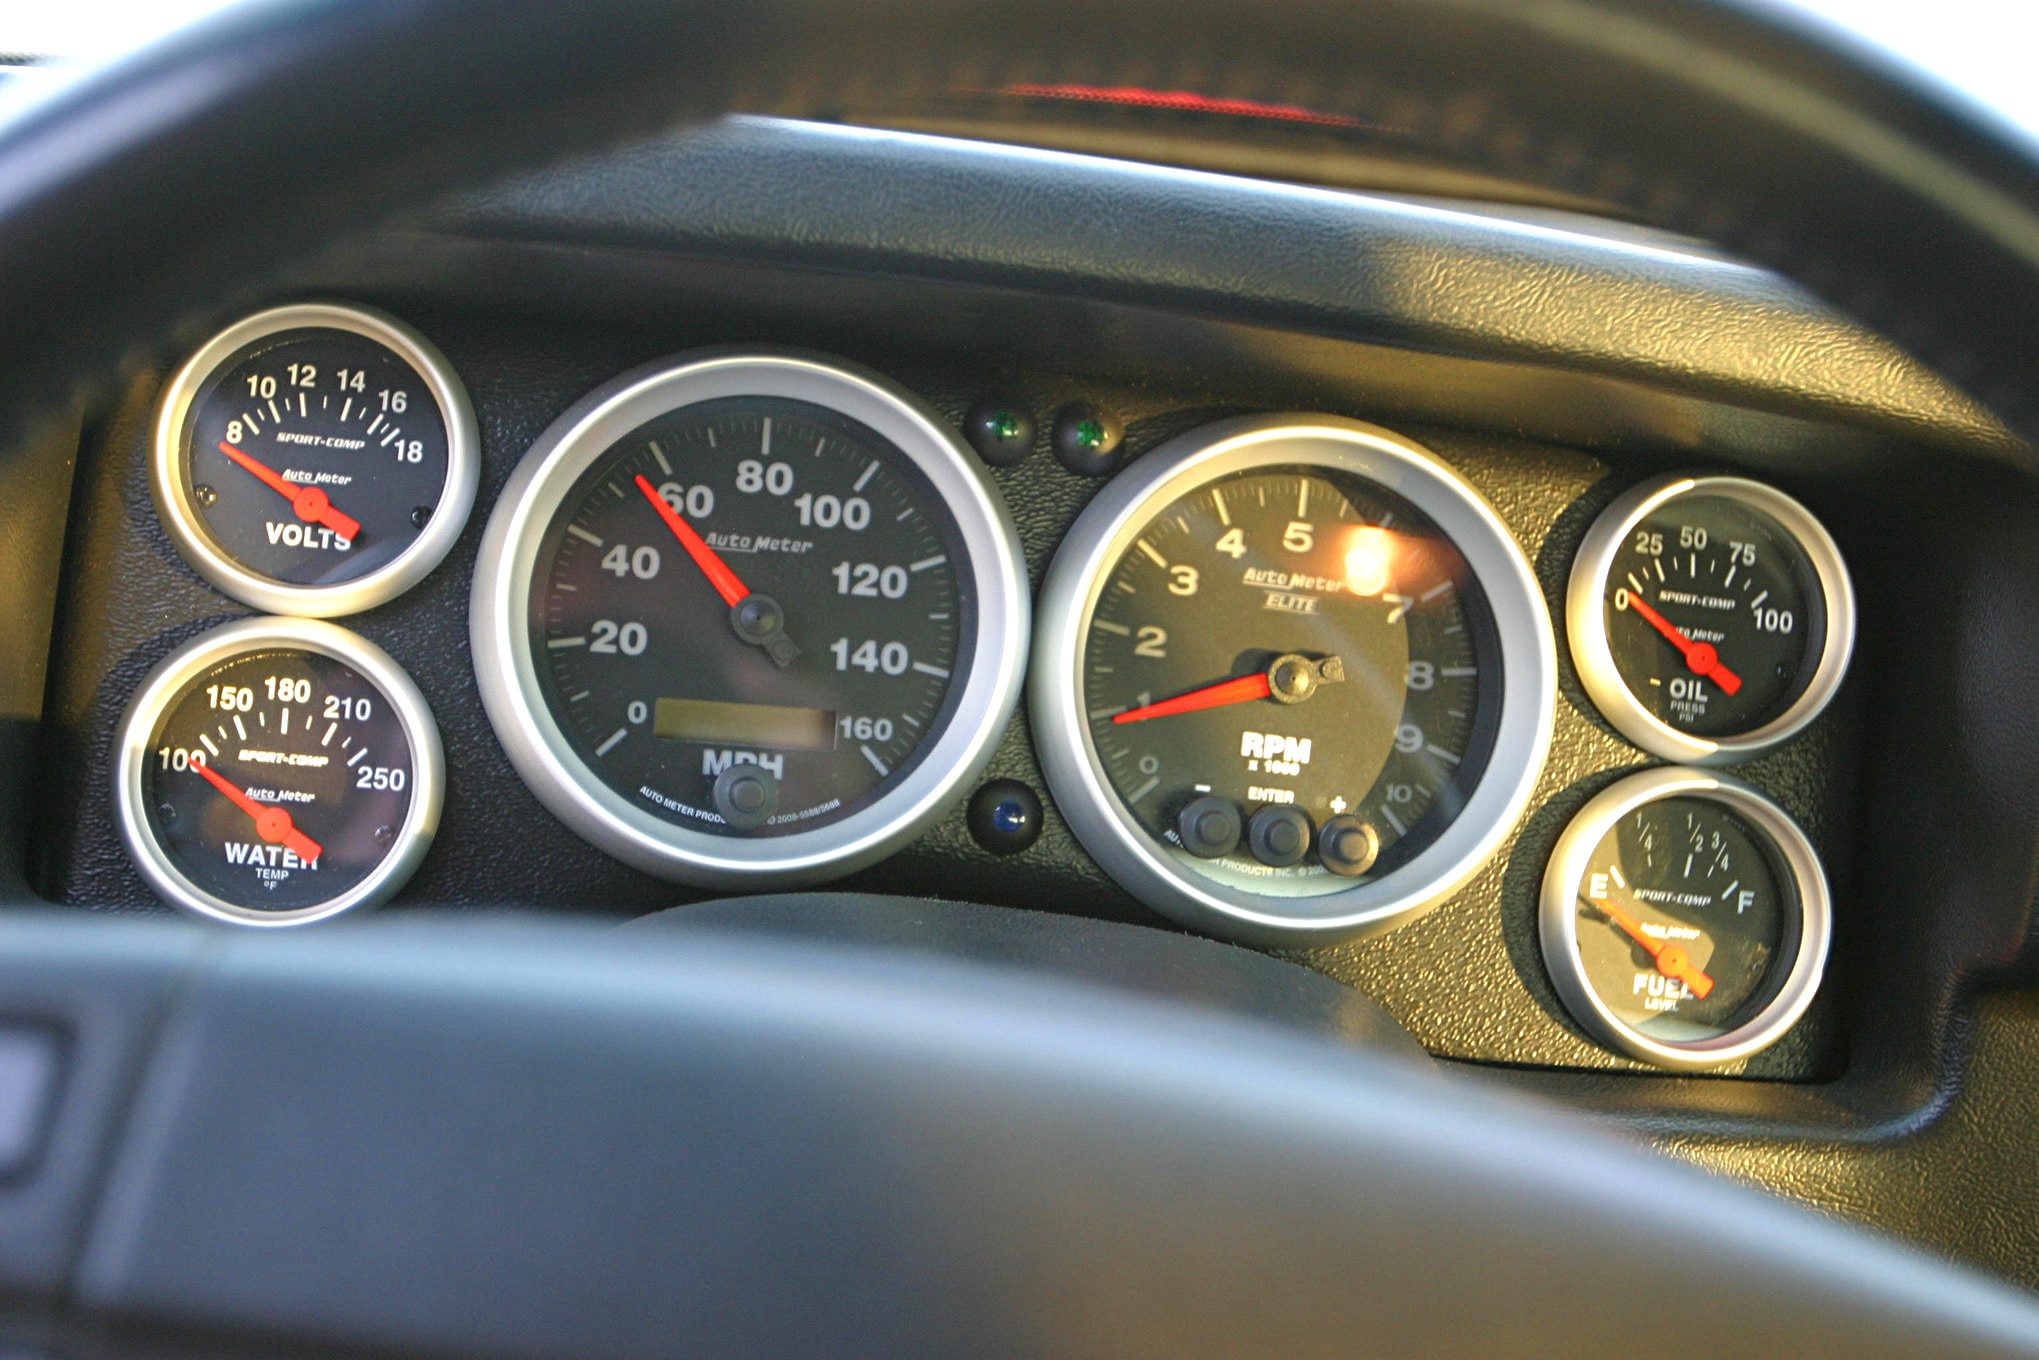 1991 Ford Mustang Lx Fox Body Gauge Cluster